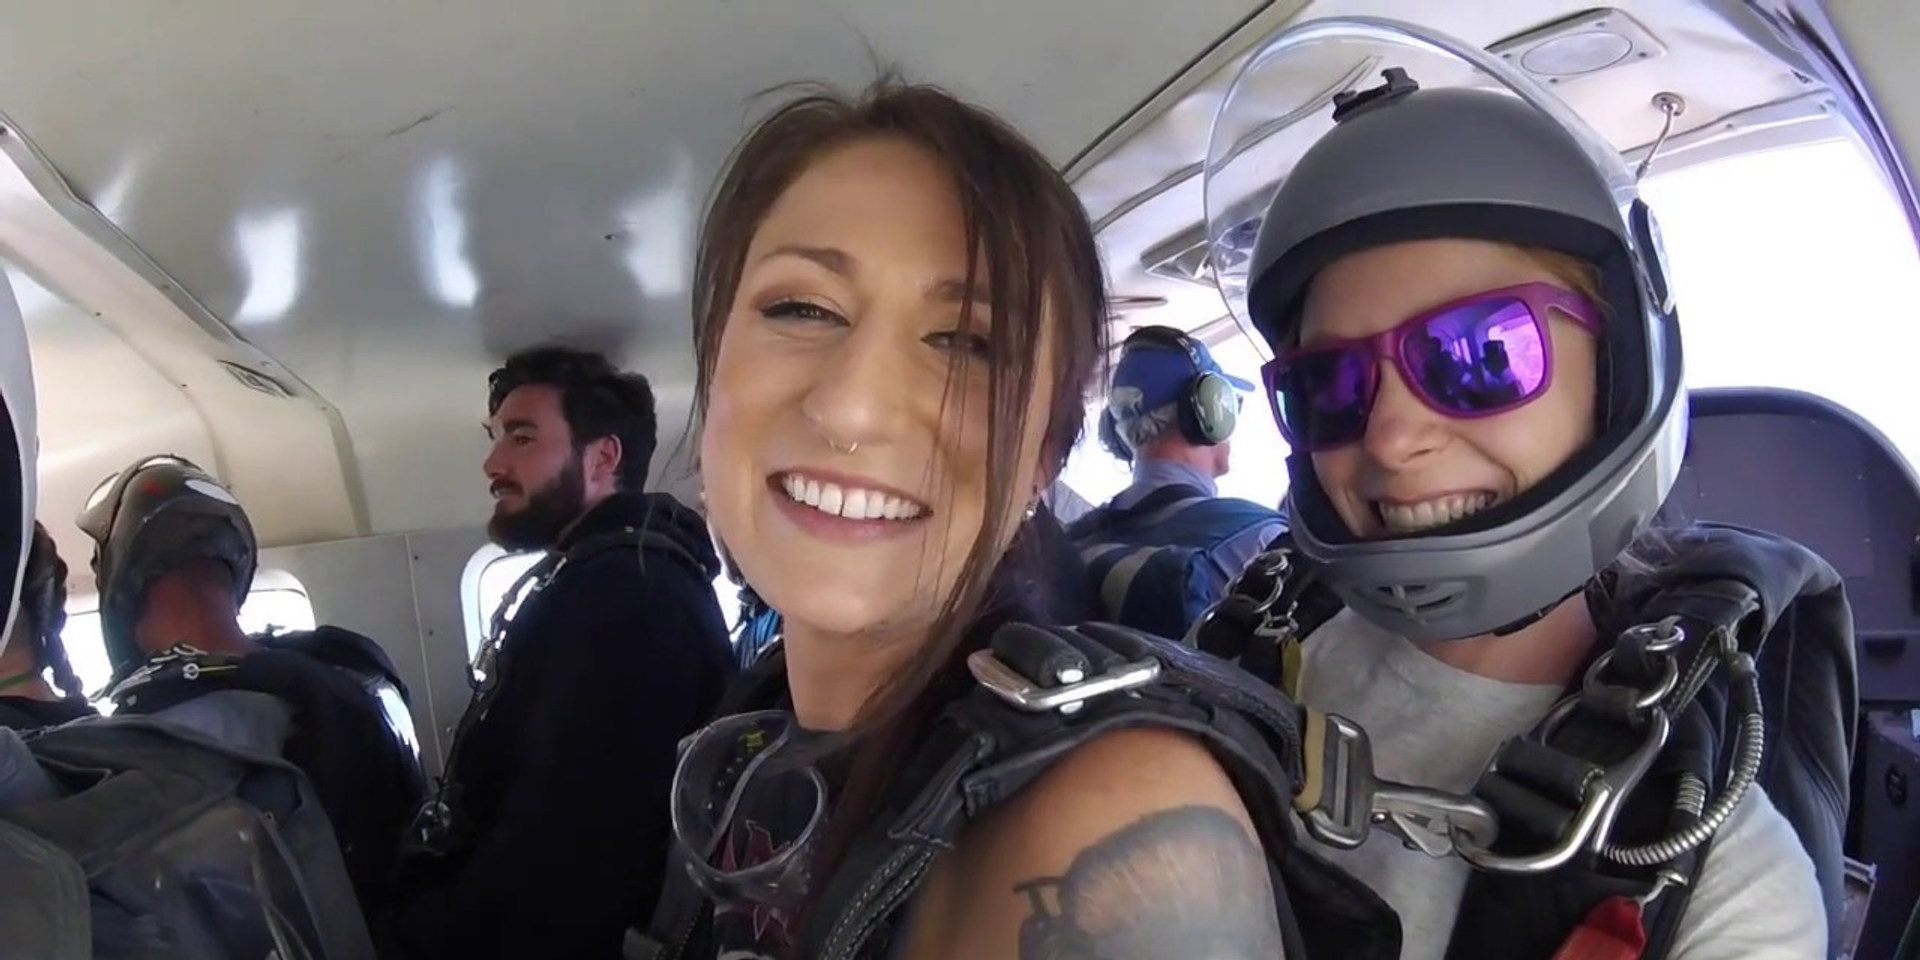 Skydive Hollister Jumps June 1-4 2018 | Skydiving in California, Coastal Views, Bay Area Experience